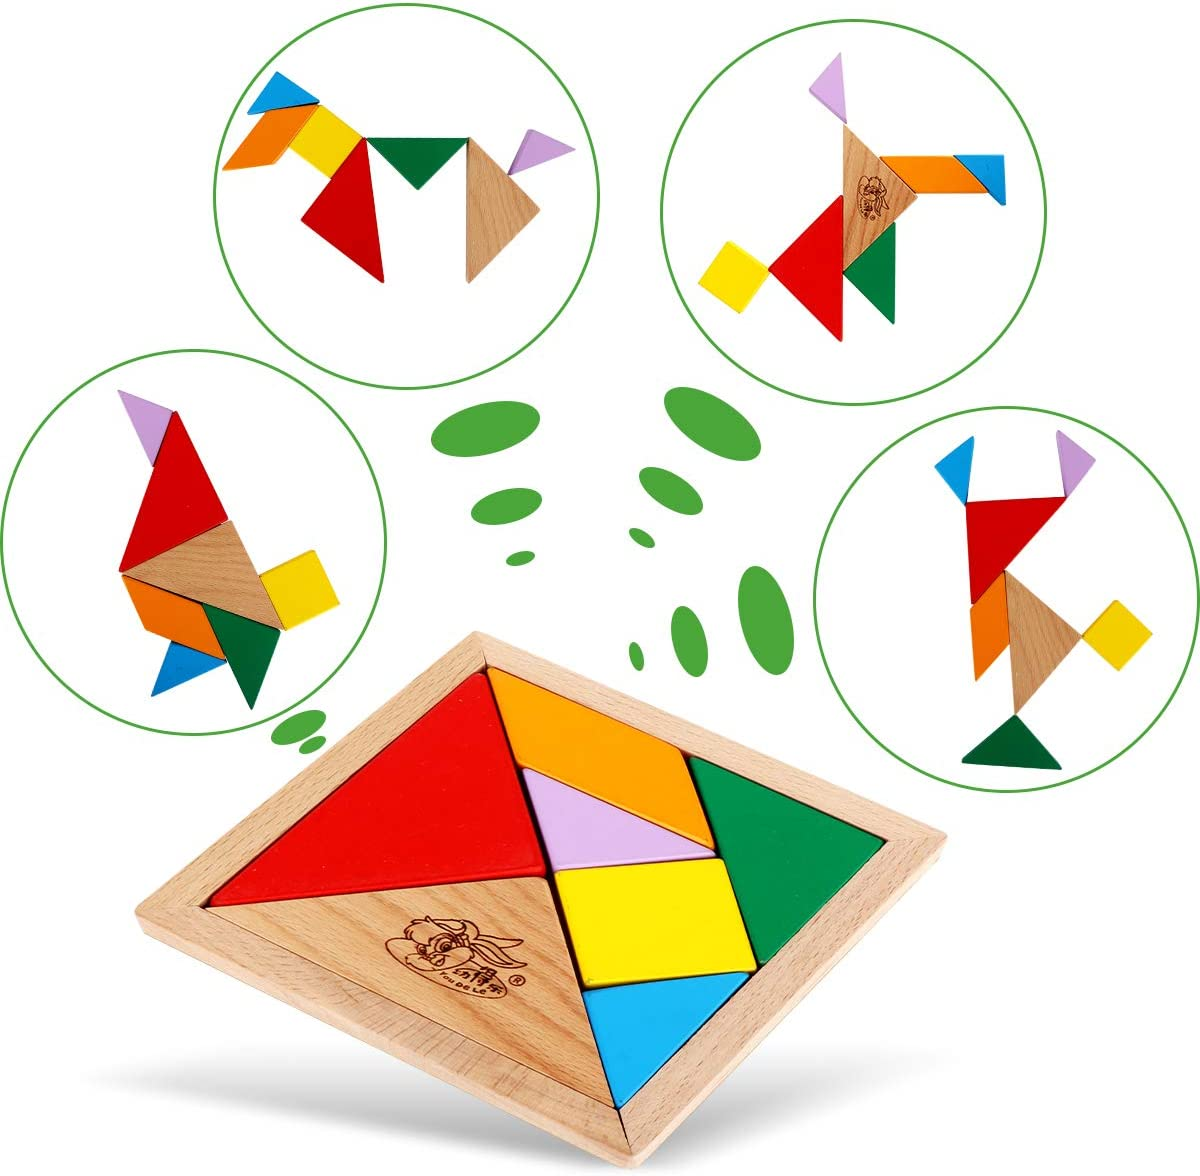 Eye-Hand Coordination Exercise 6 in 1 Cube 3D Wooden Puzzle and A Set of Wooden Tangram Childrens Educational Toys Childrens Brain Thinking and Imagination Stimulation Marine Animal